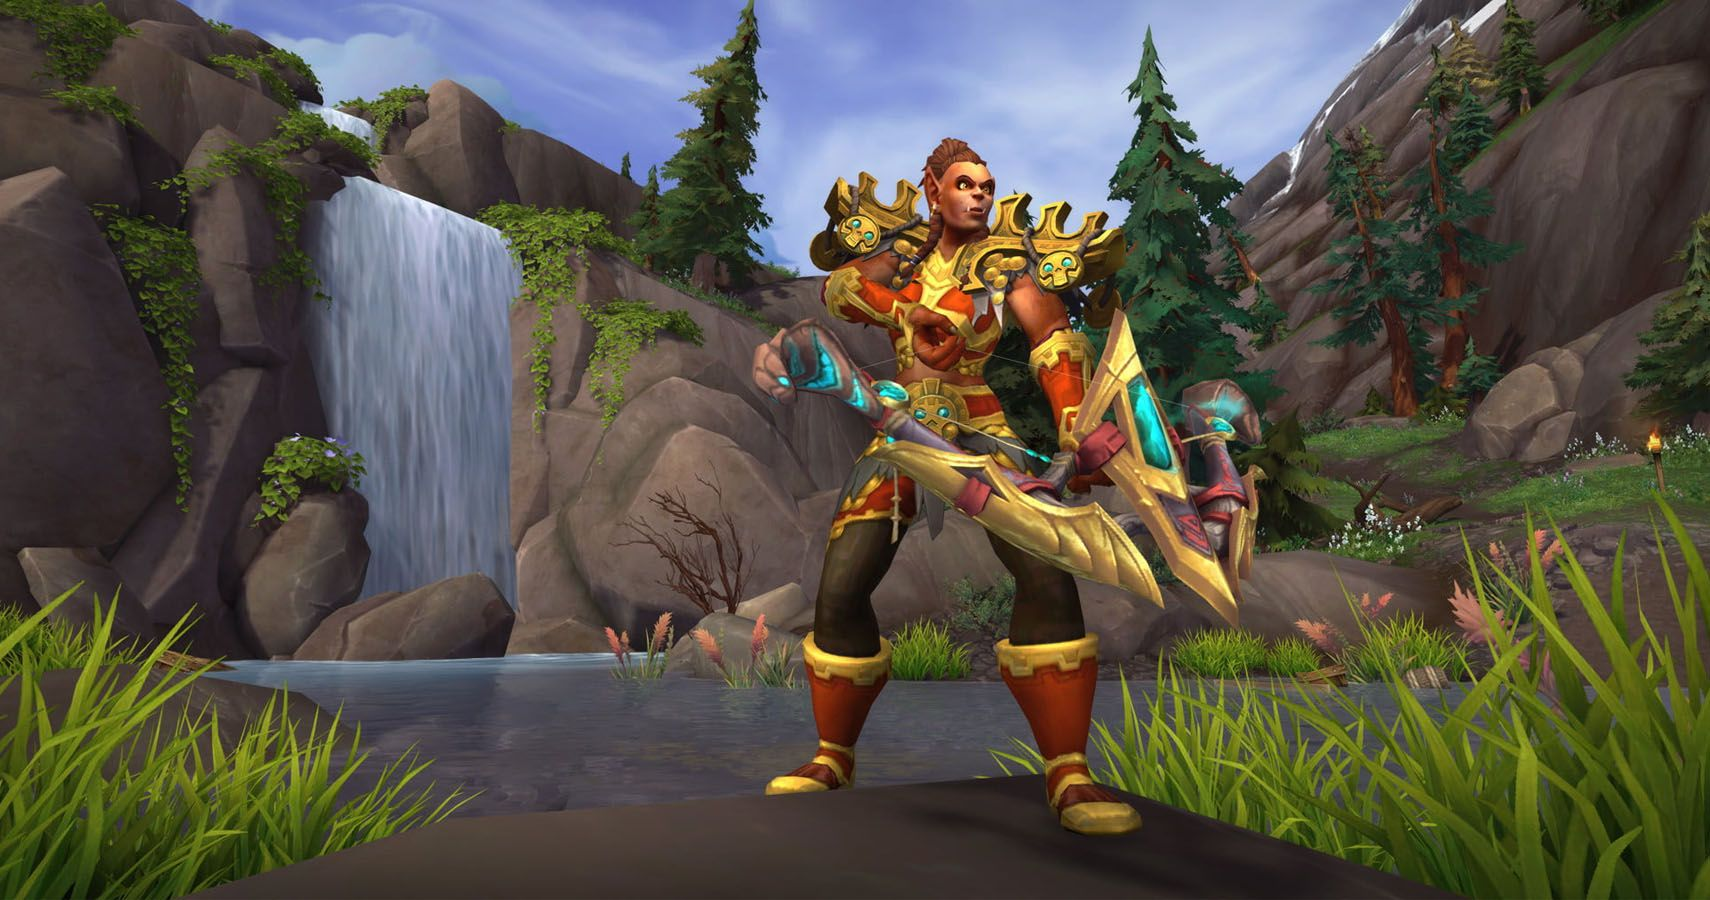 Which World Of Warcraft Class Should You Play Based On Your MBTI?